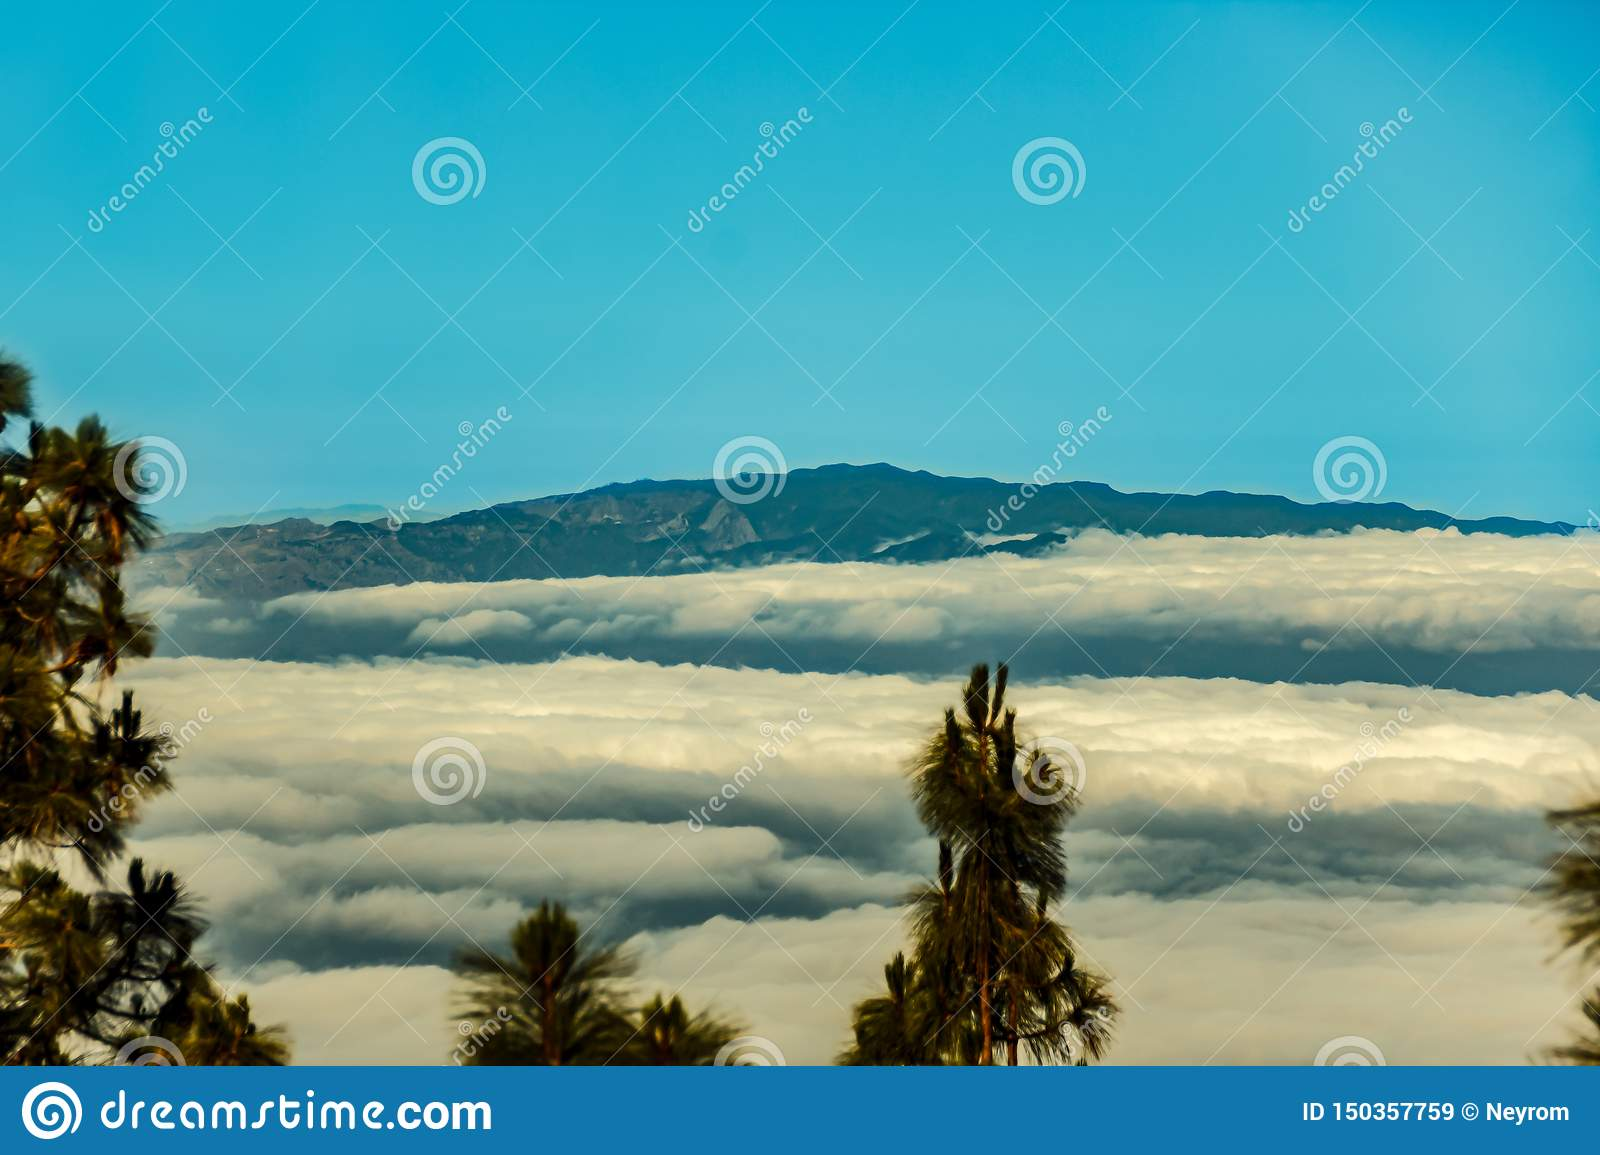 Pine forest of Tenerife, silhouette of La Gomera and Il Hierro islands on background. View from 1900m altitude. Long lens shot.